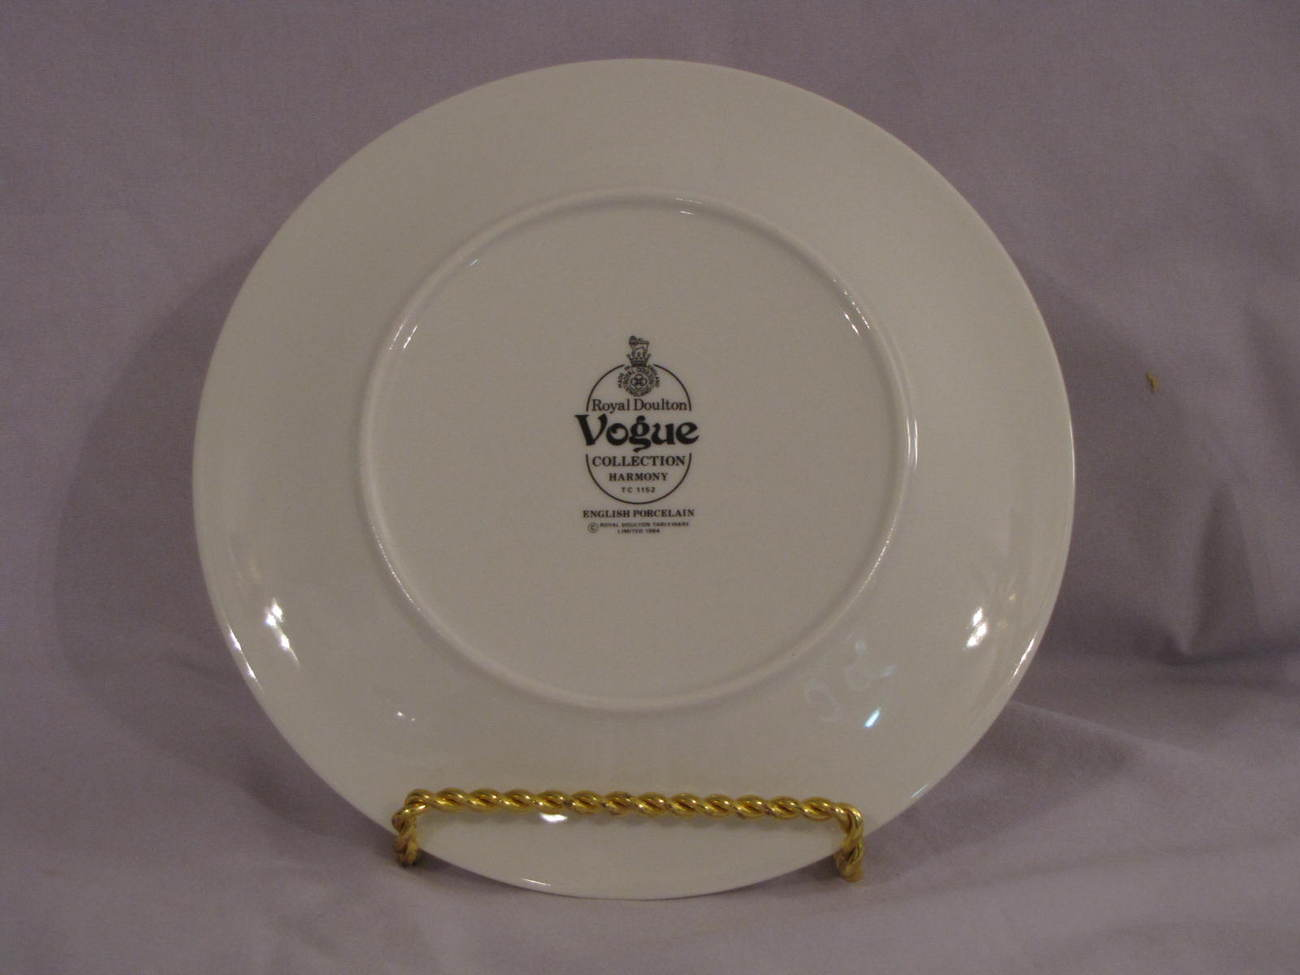 Royal Doulton Vogue Collection Harmony Salad Plate